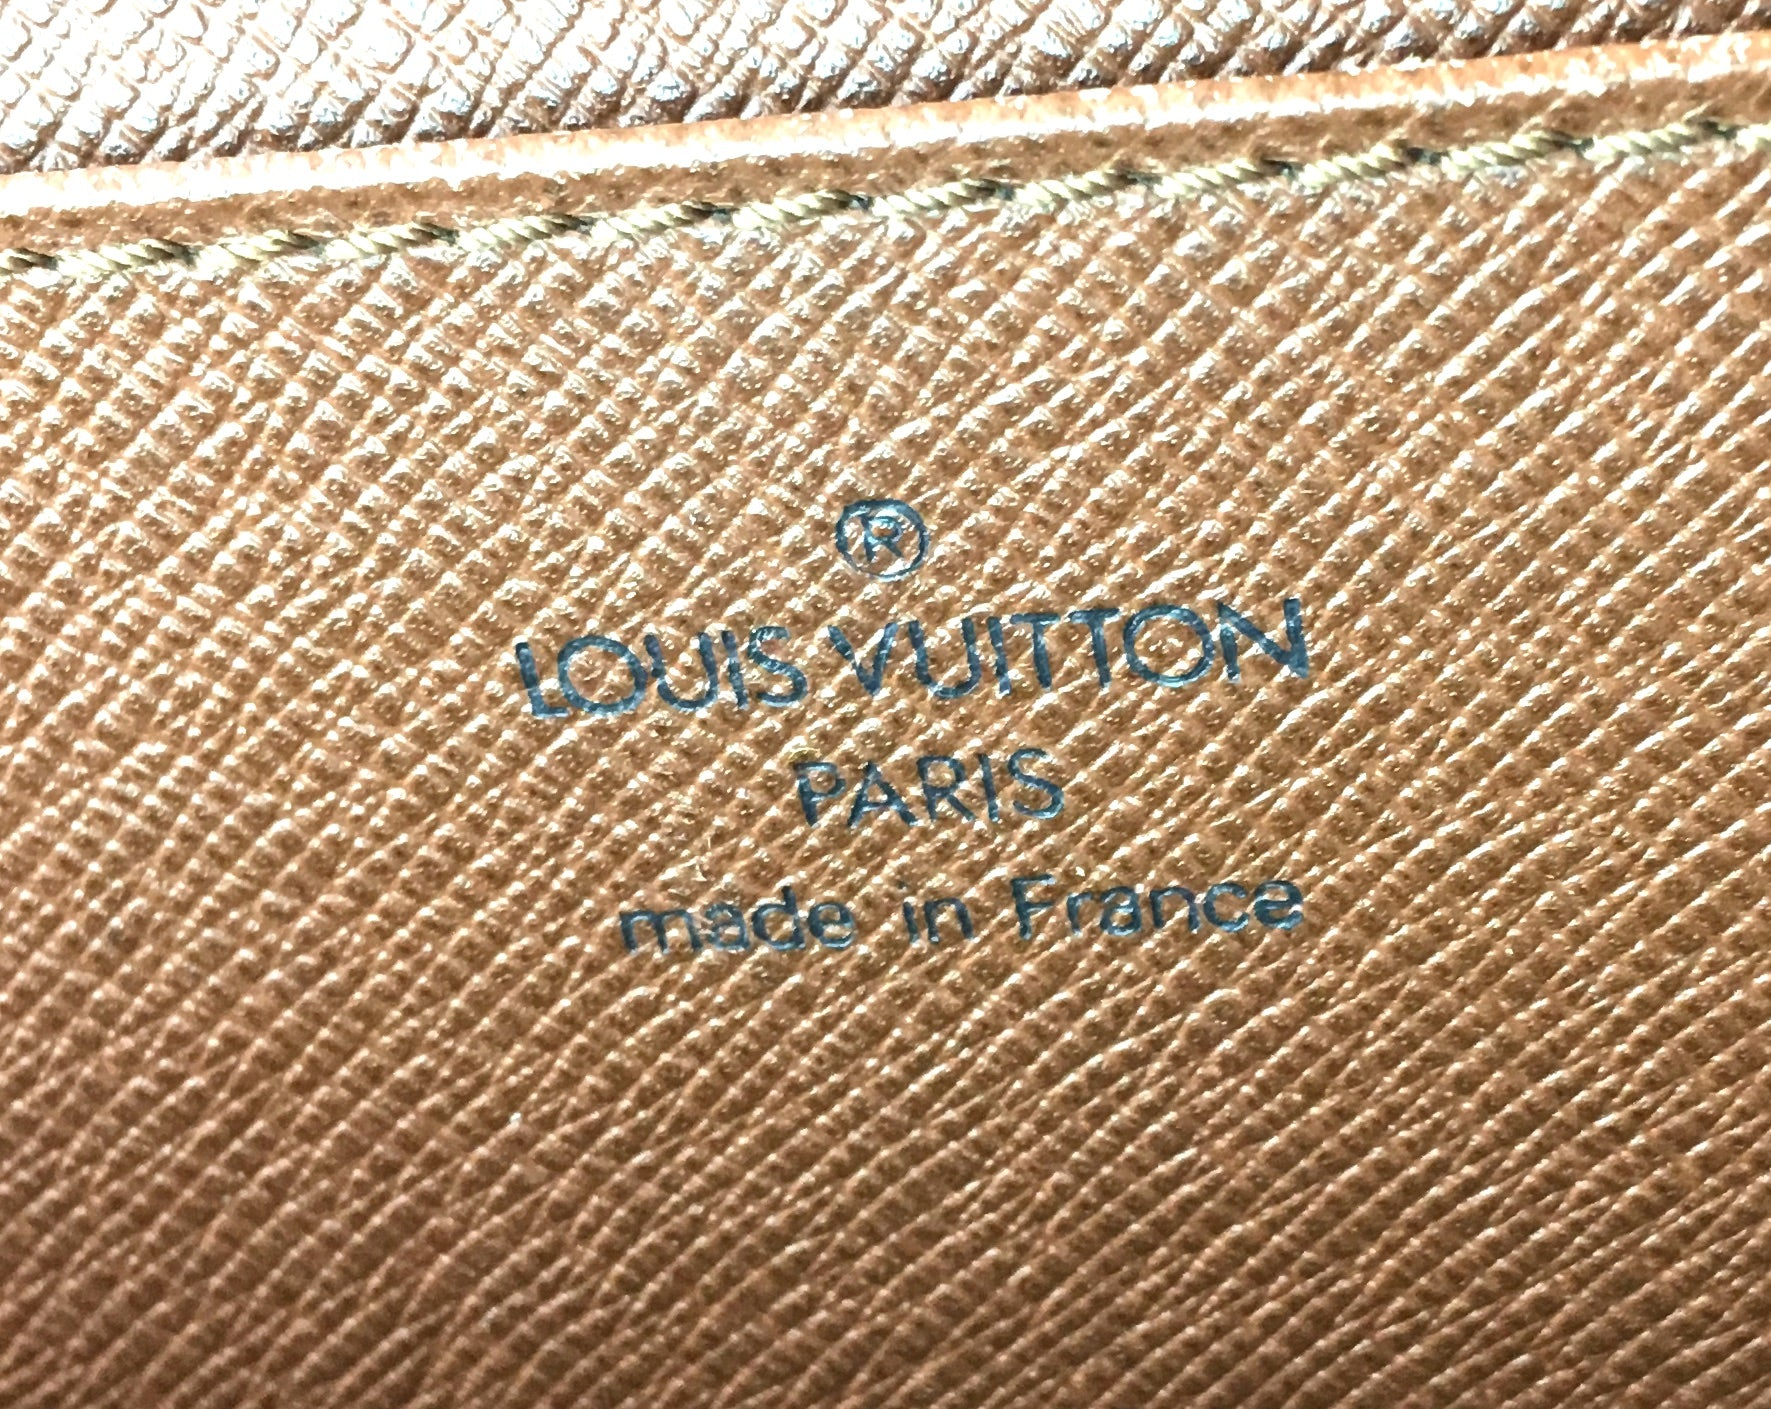 Louis Vuitton Monogram Serviette Conseiller Briefcase Laptop Bag